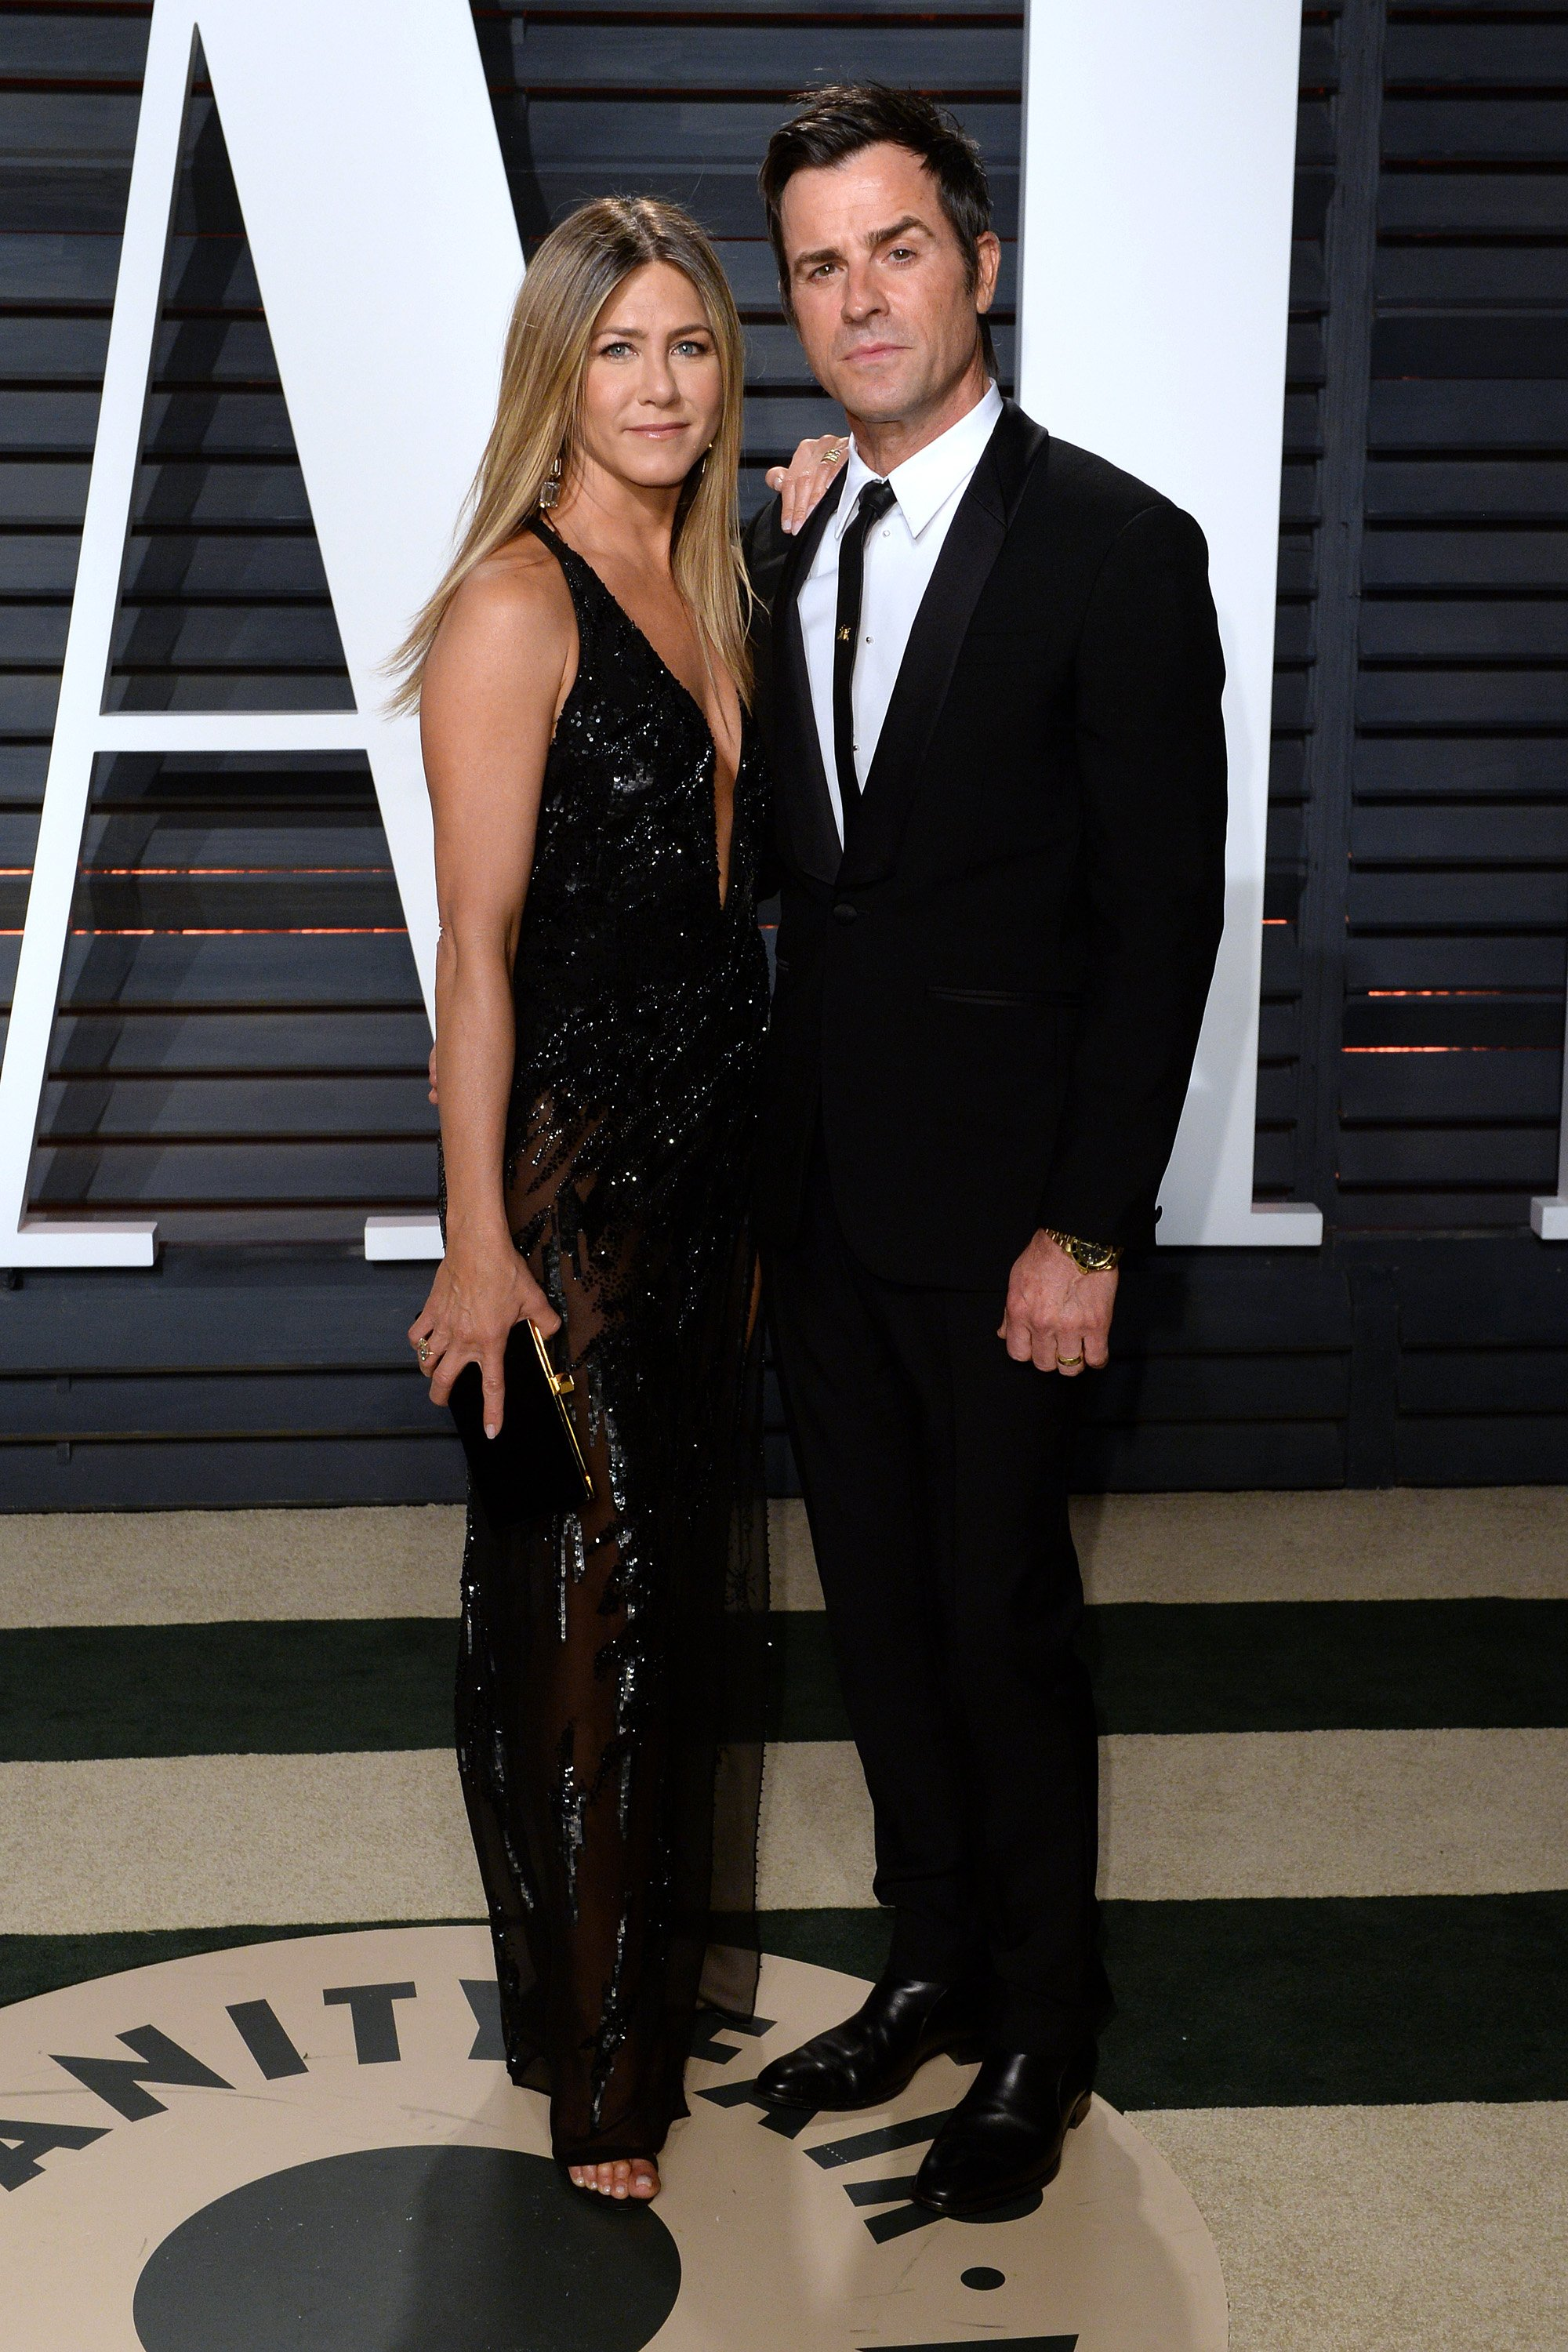 Justin Theroux and Jennifer Aniston attend the 2017 Vanity Fair Oscar Party. | Source: Getty Images